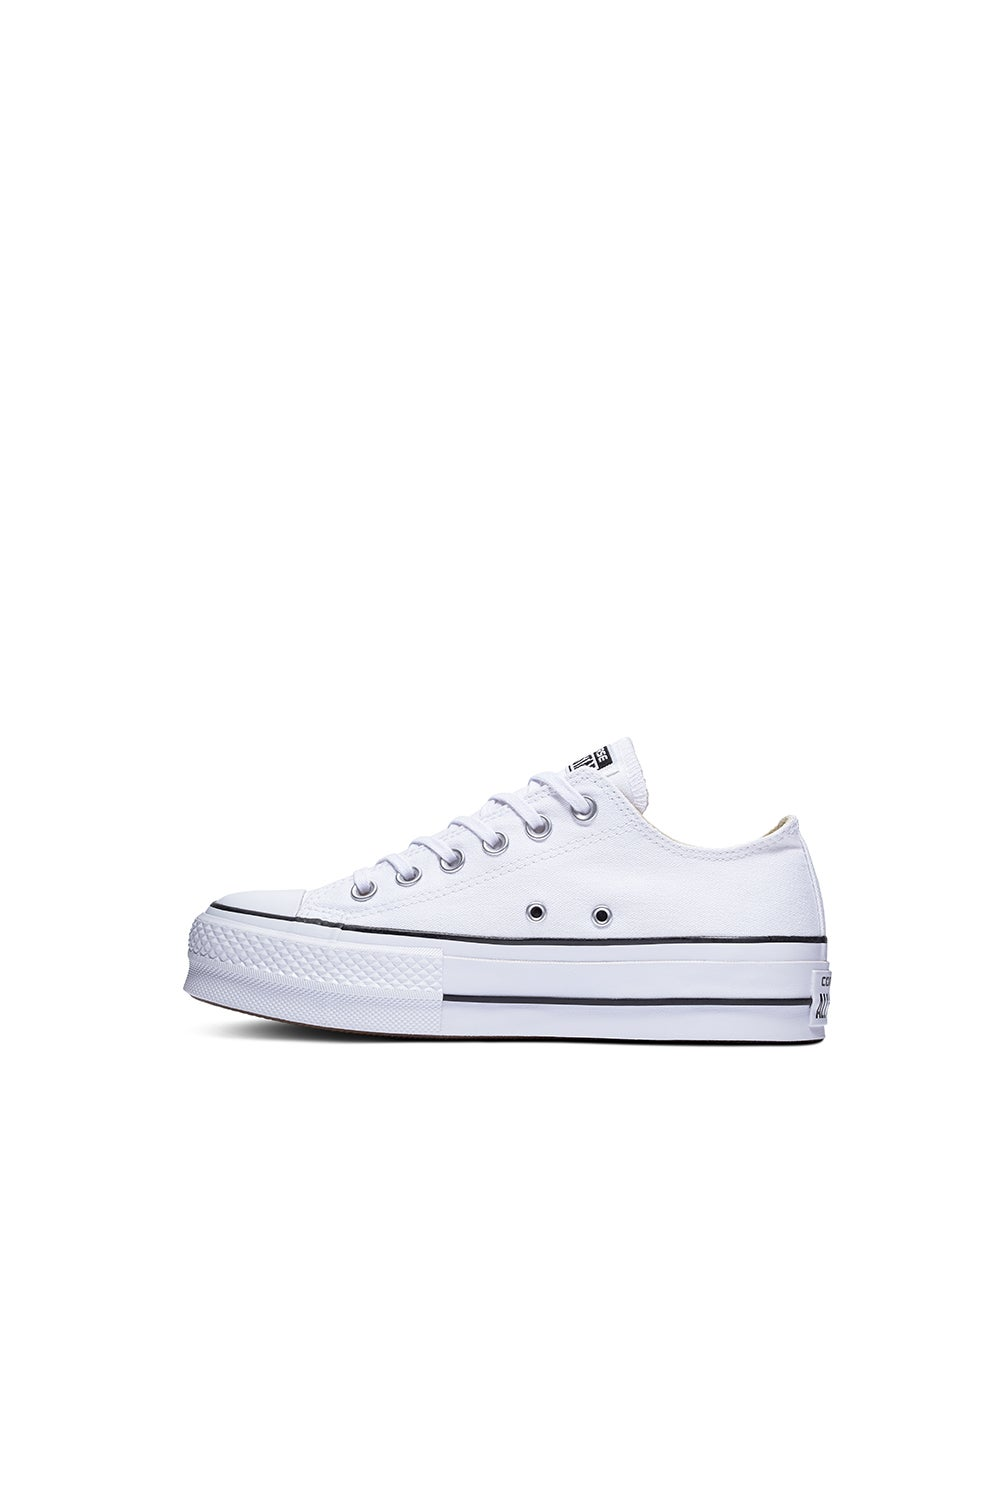 Converse Chuck Taylor All Star Canvas Lift Low Top White/Black/White